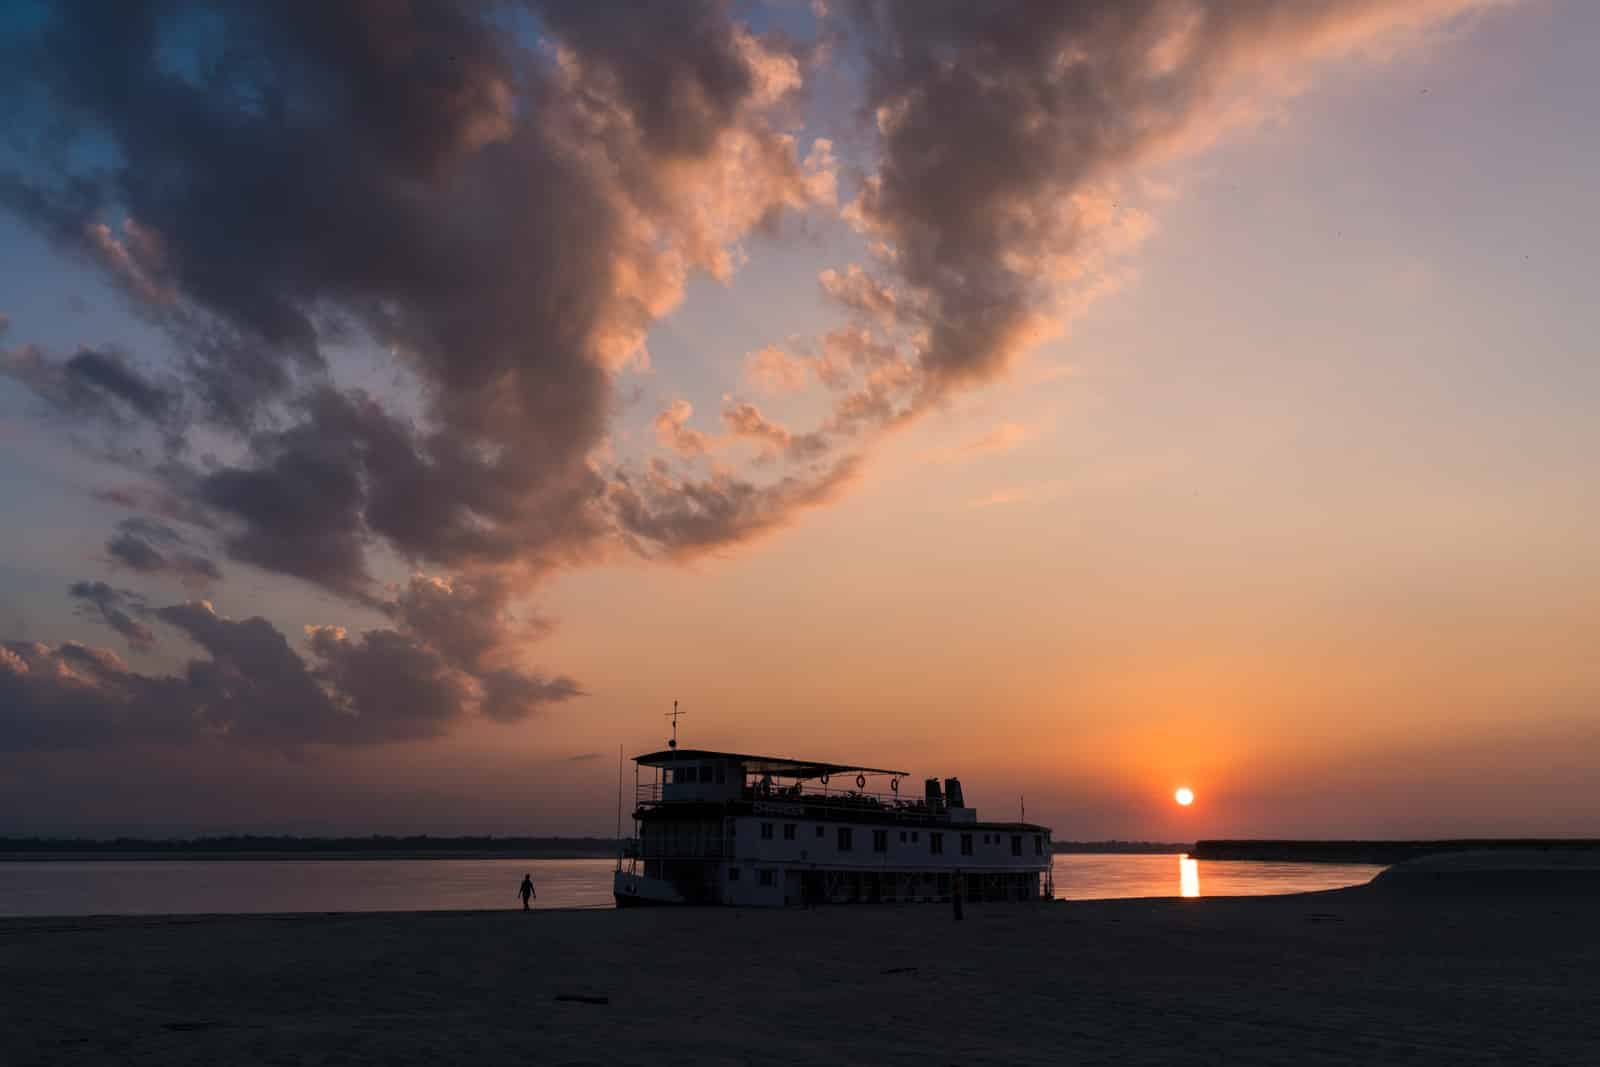 Luxury Indian river cruise on the Brahmaputra with Assam Bengal Navigation - Boat silhouette and sunset on the river - Lost With Purpose travel blog